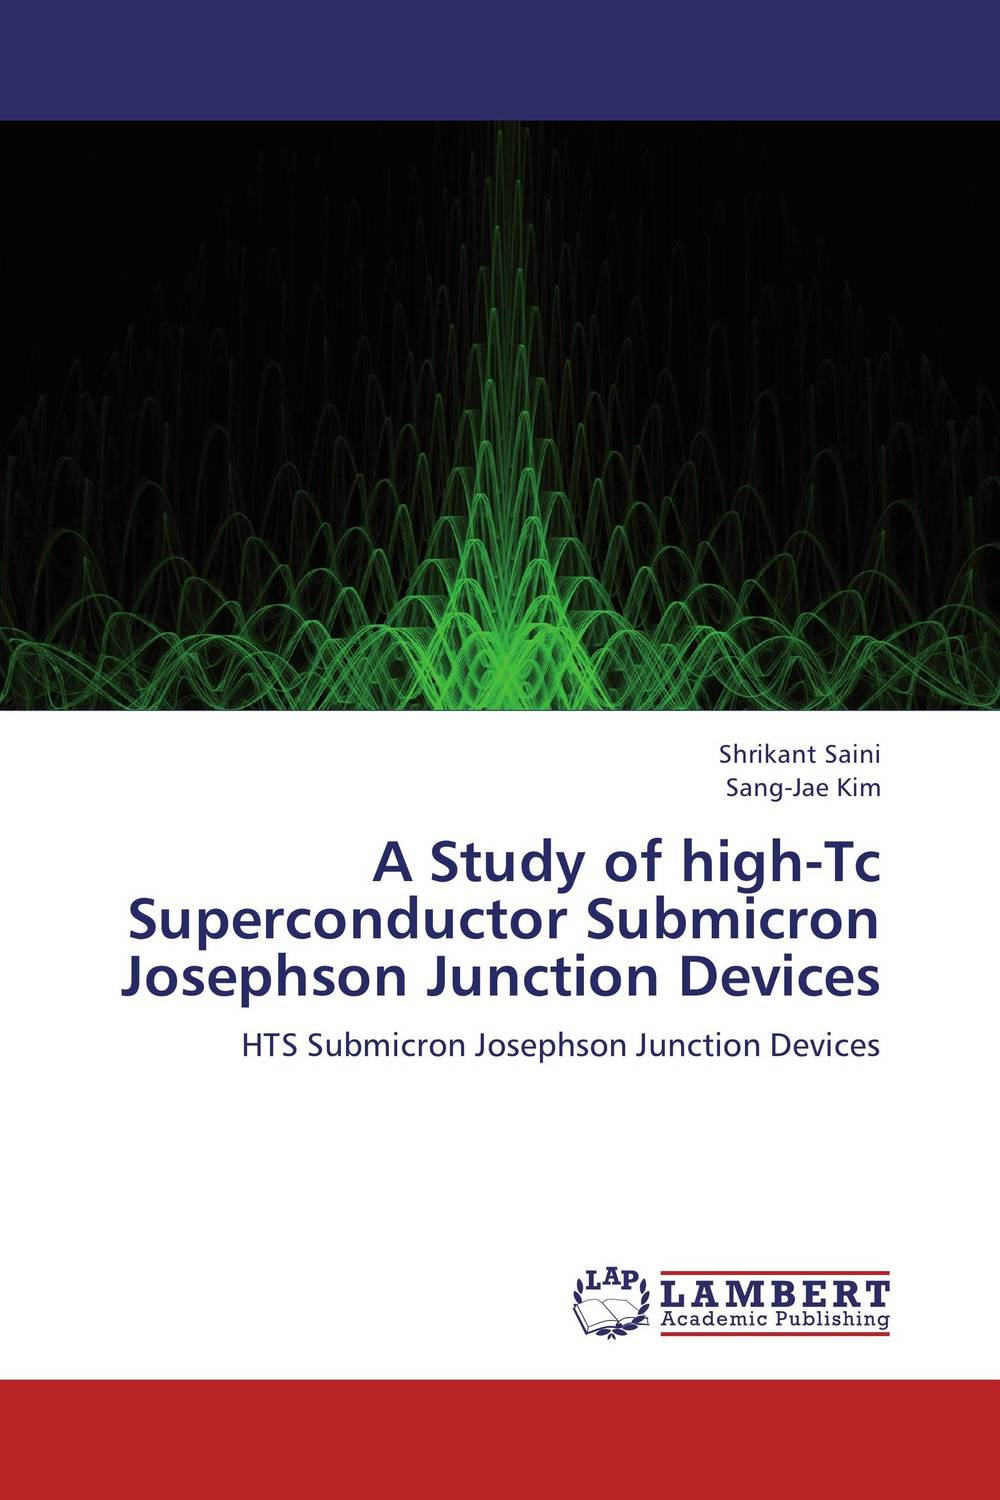 A Study of high-Tc Superconductor Submicron Josephson Junction Devices carbohydrate doped mgb2 superconductor for magnet application